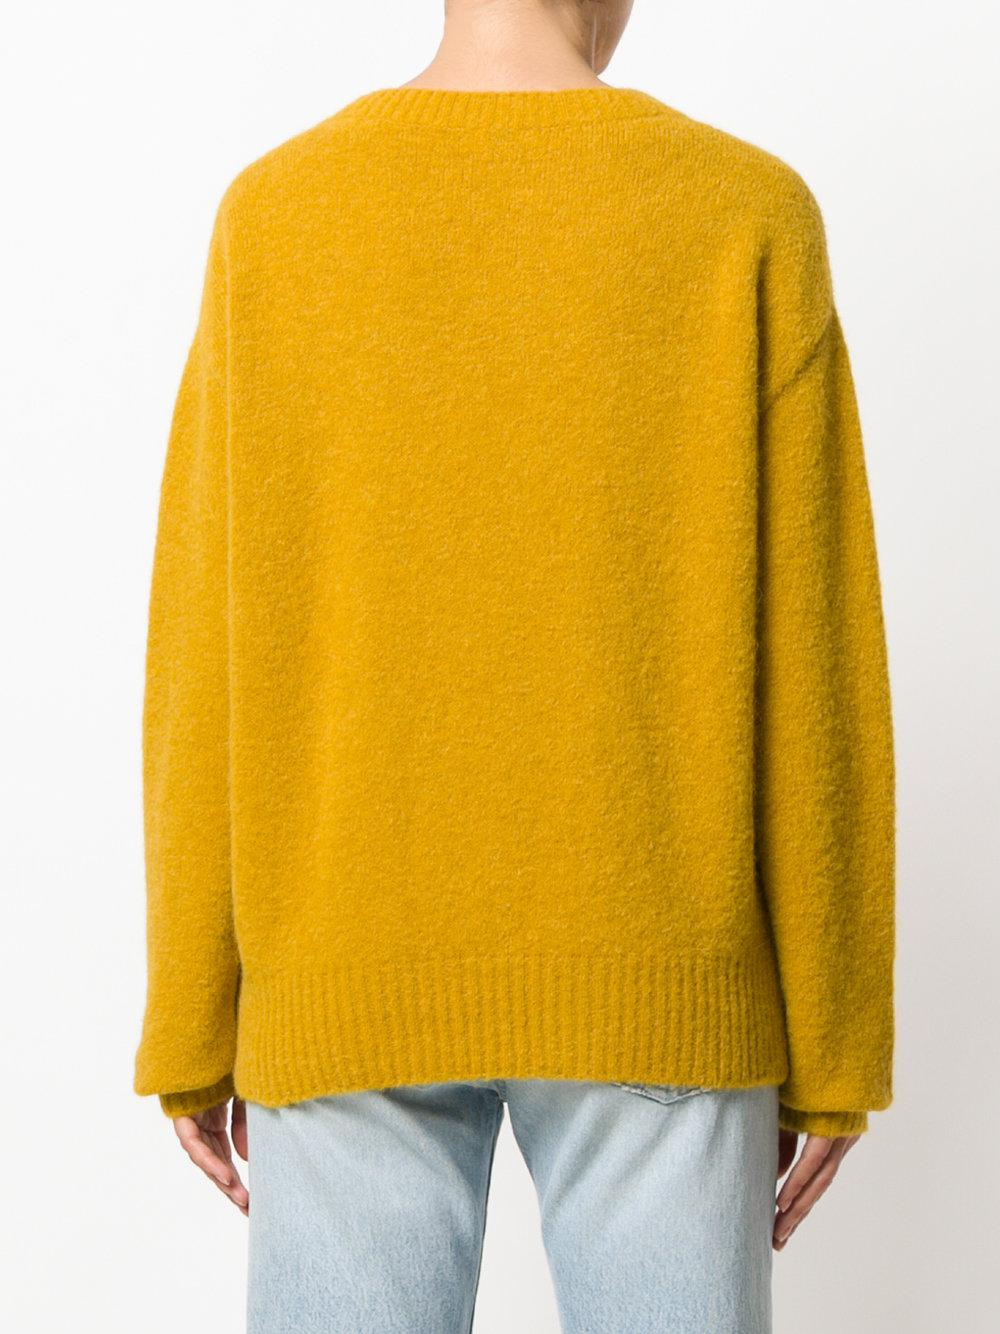 Closed Crew Neck Sweater in Yellow | Lyst